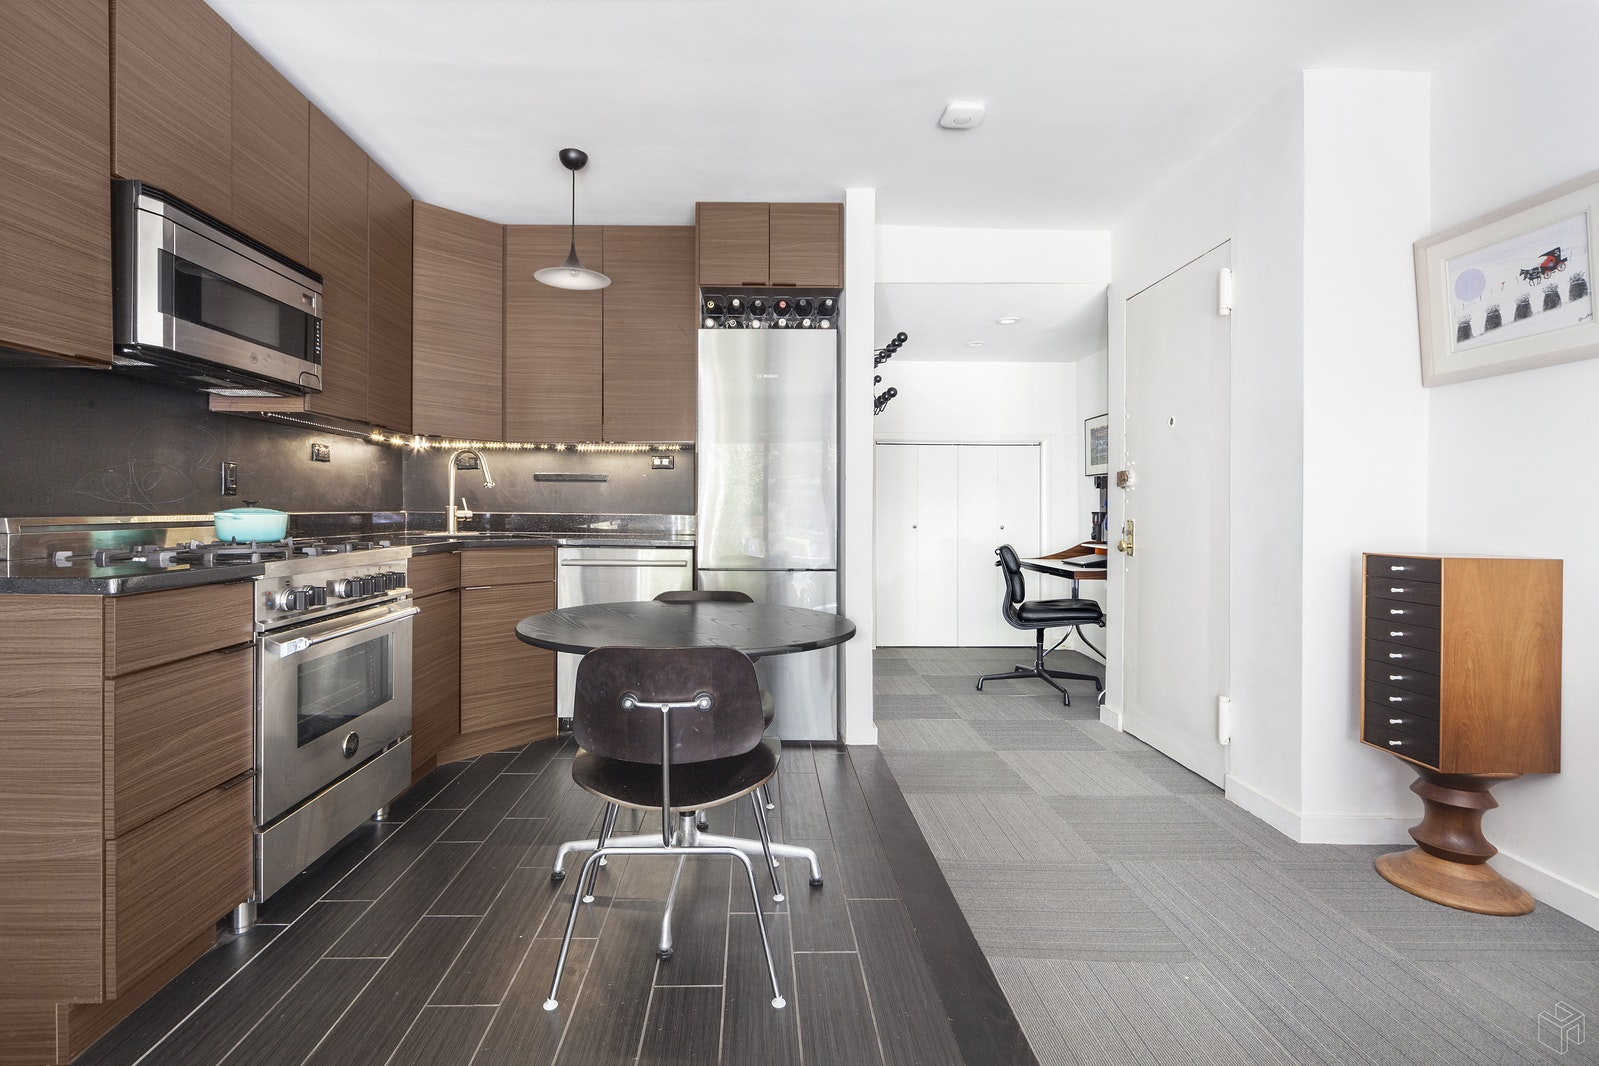 460 West 23rd Street Gb, Chelsea, NYC, 10011, $745,000, Sold Property, Halstead Real Estate, Photo 3